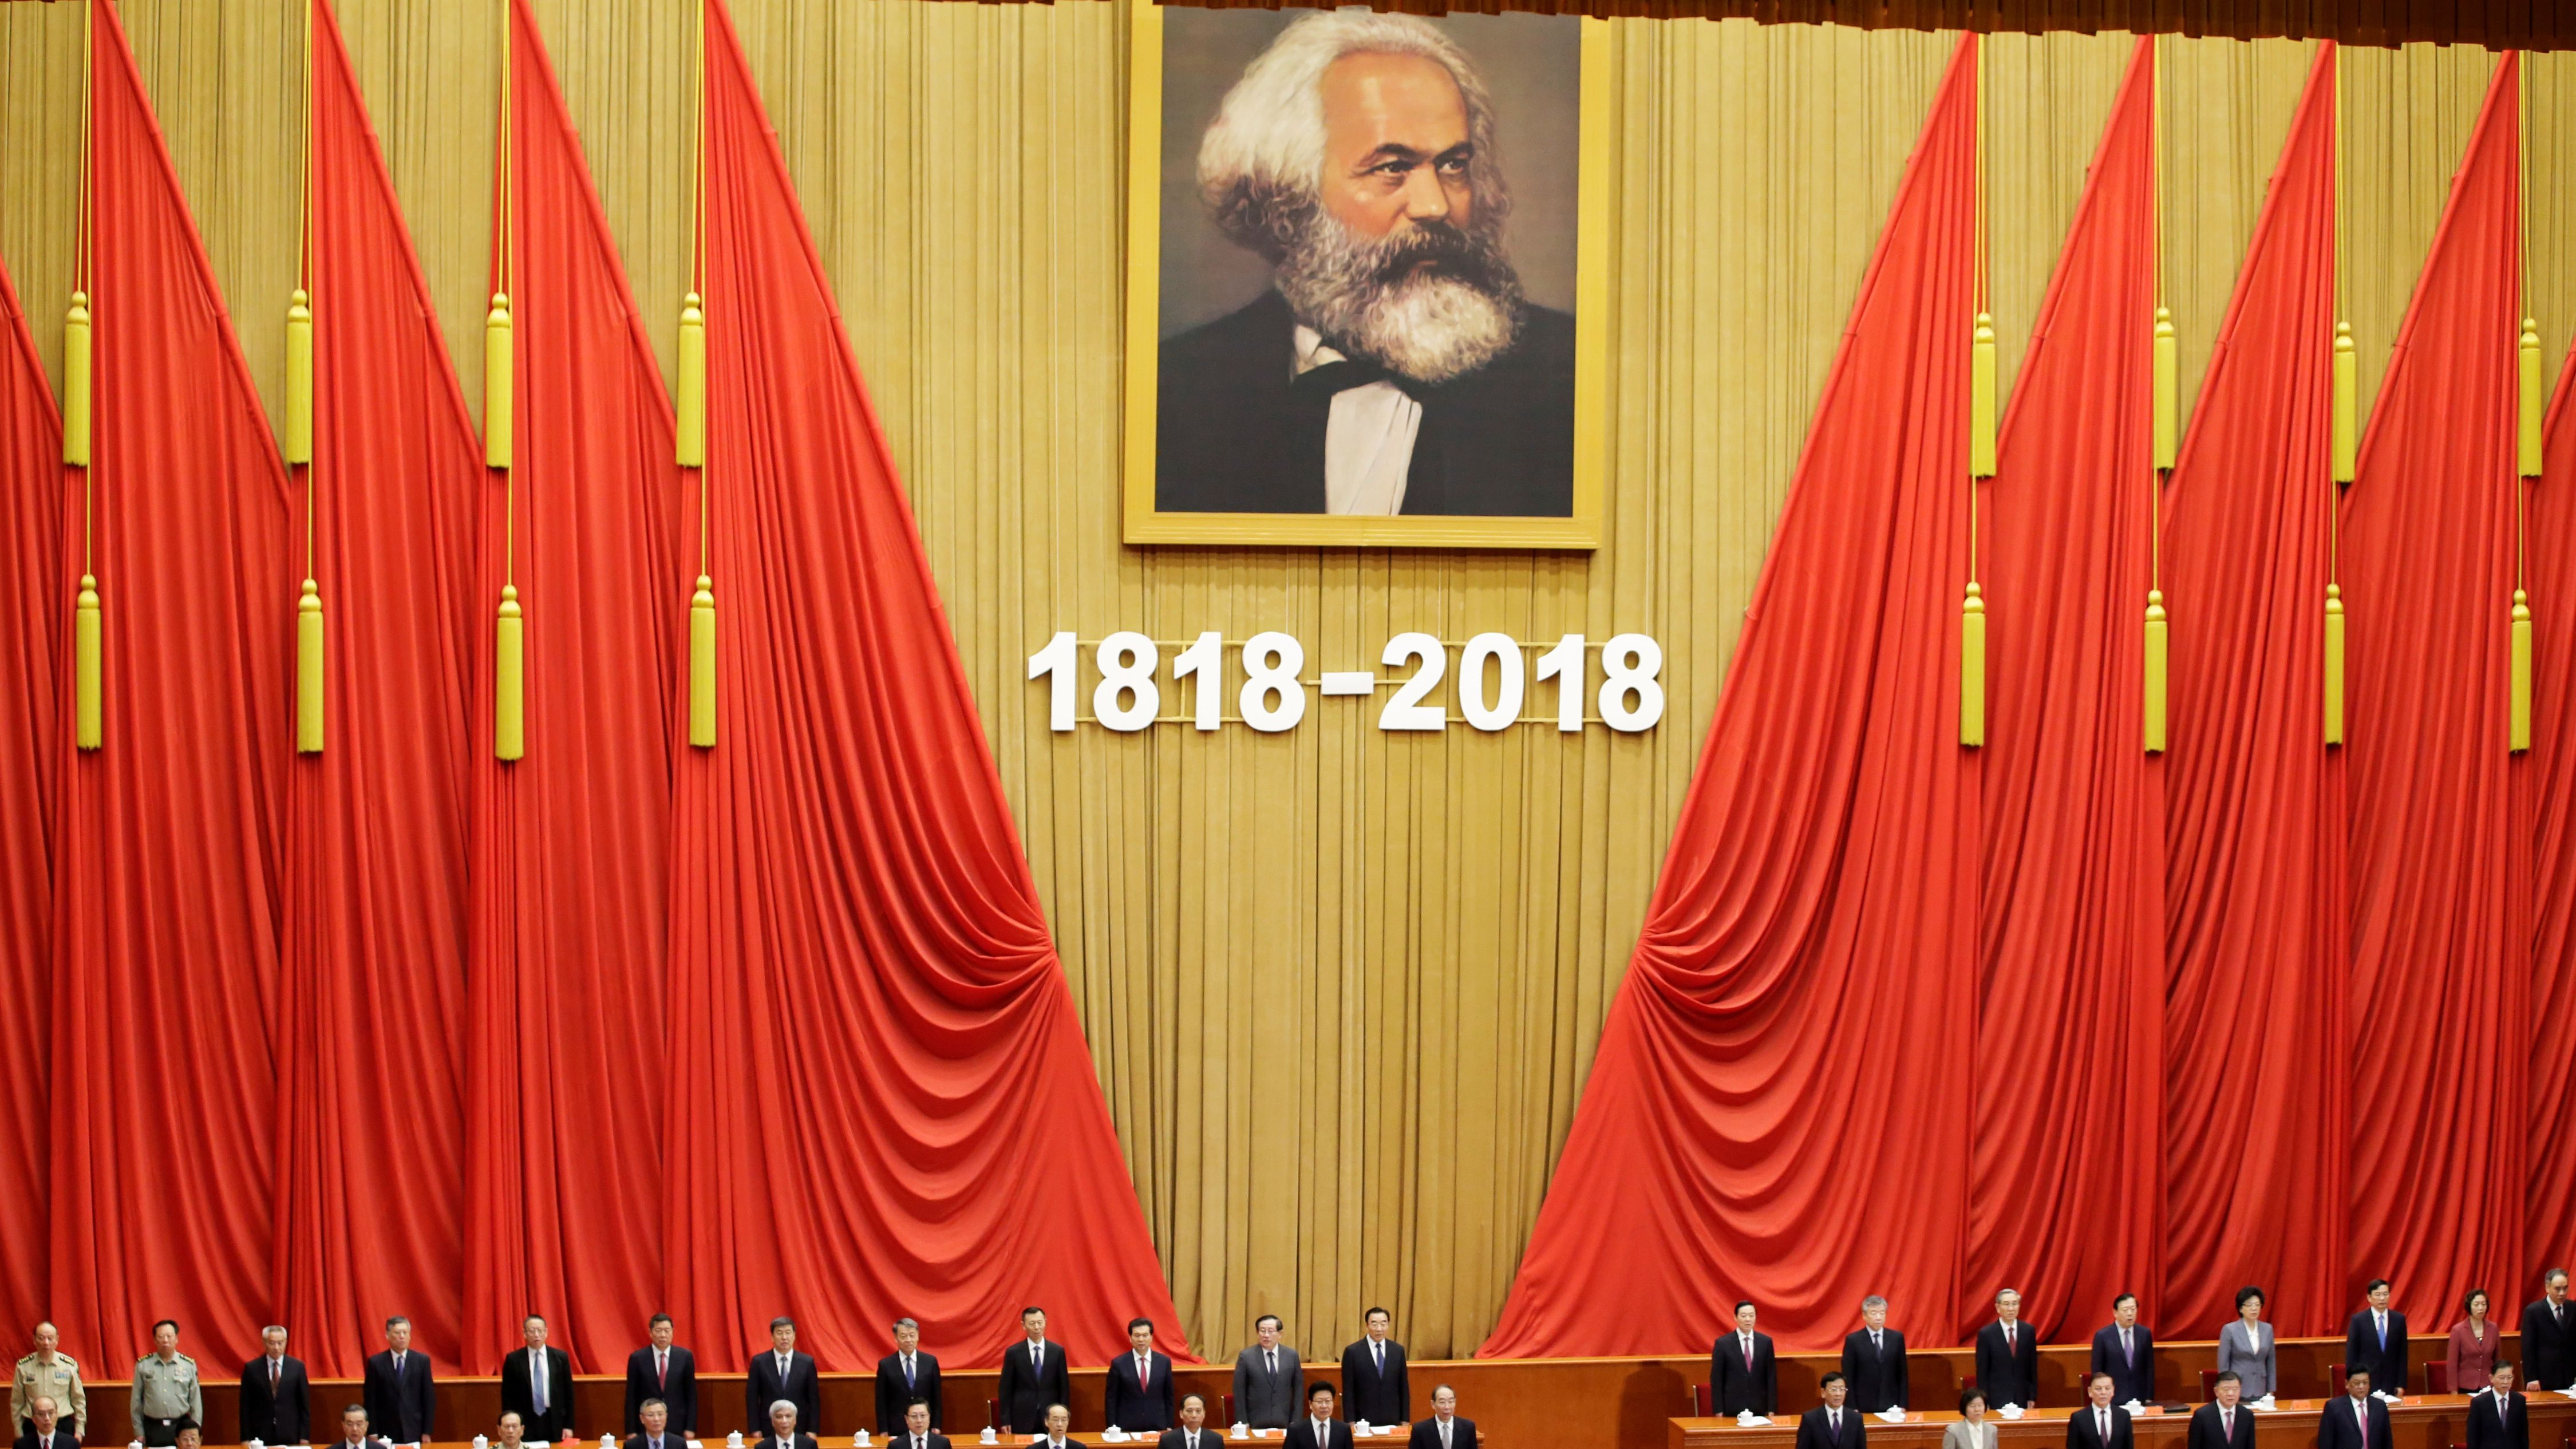 China's Xi Jinping is celebrating Karl Marx's birthday with a ...